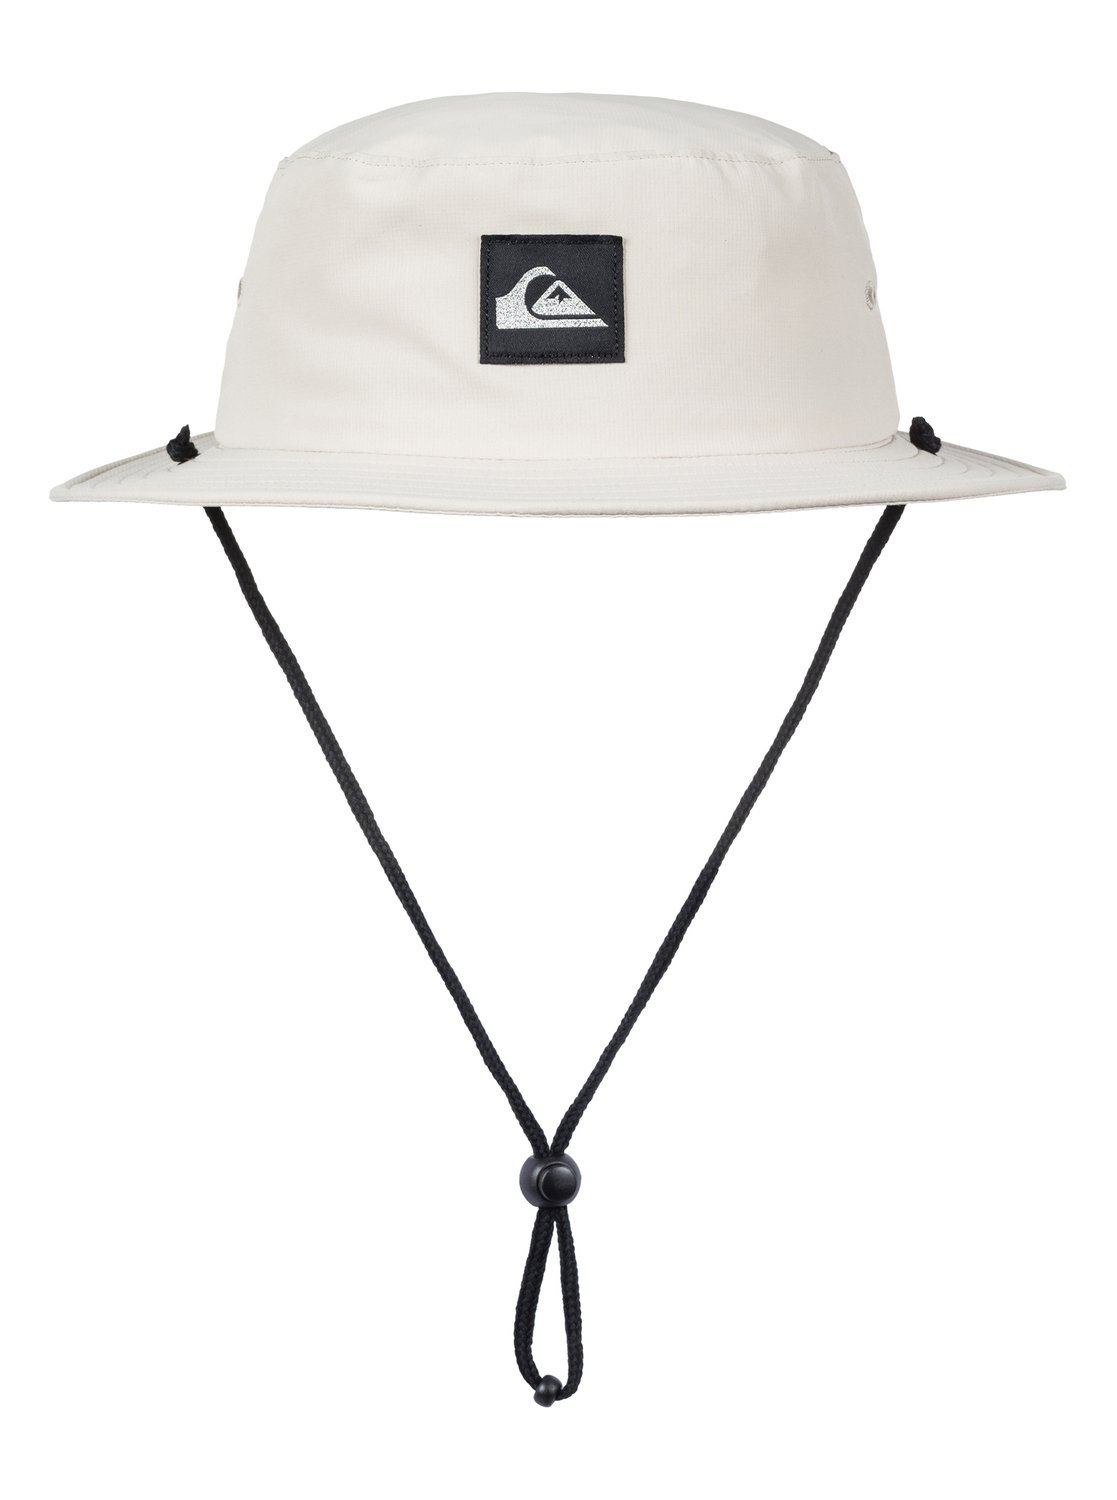 2fe6c7aa48bd0 ... discount code for quiksilver bushmaster light bucket spring summer sun  hat with chin straps xl 5d756